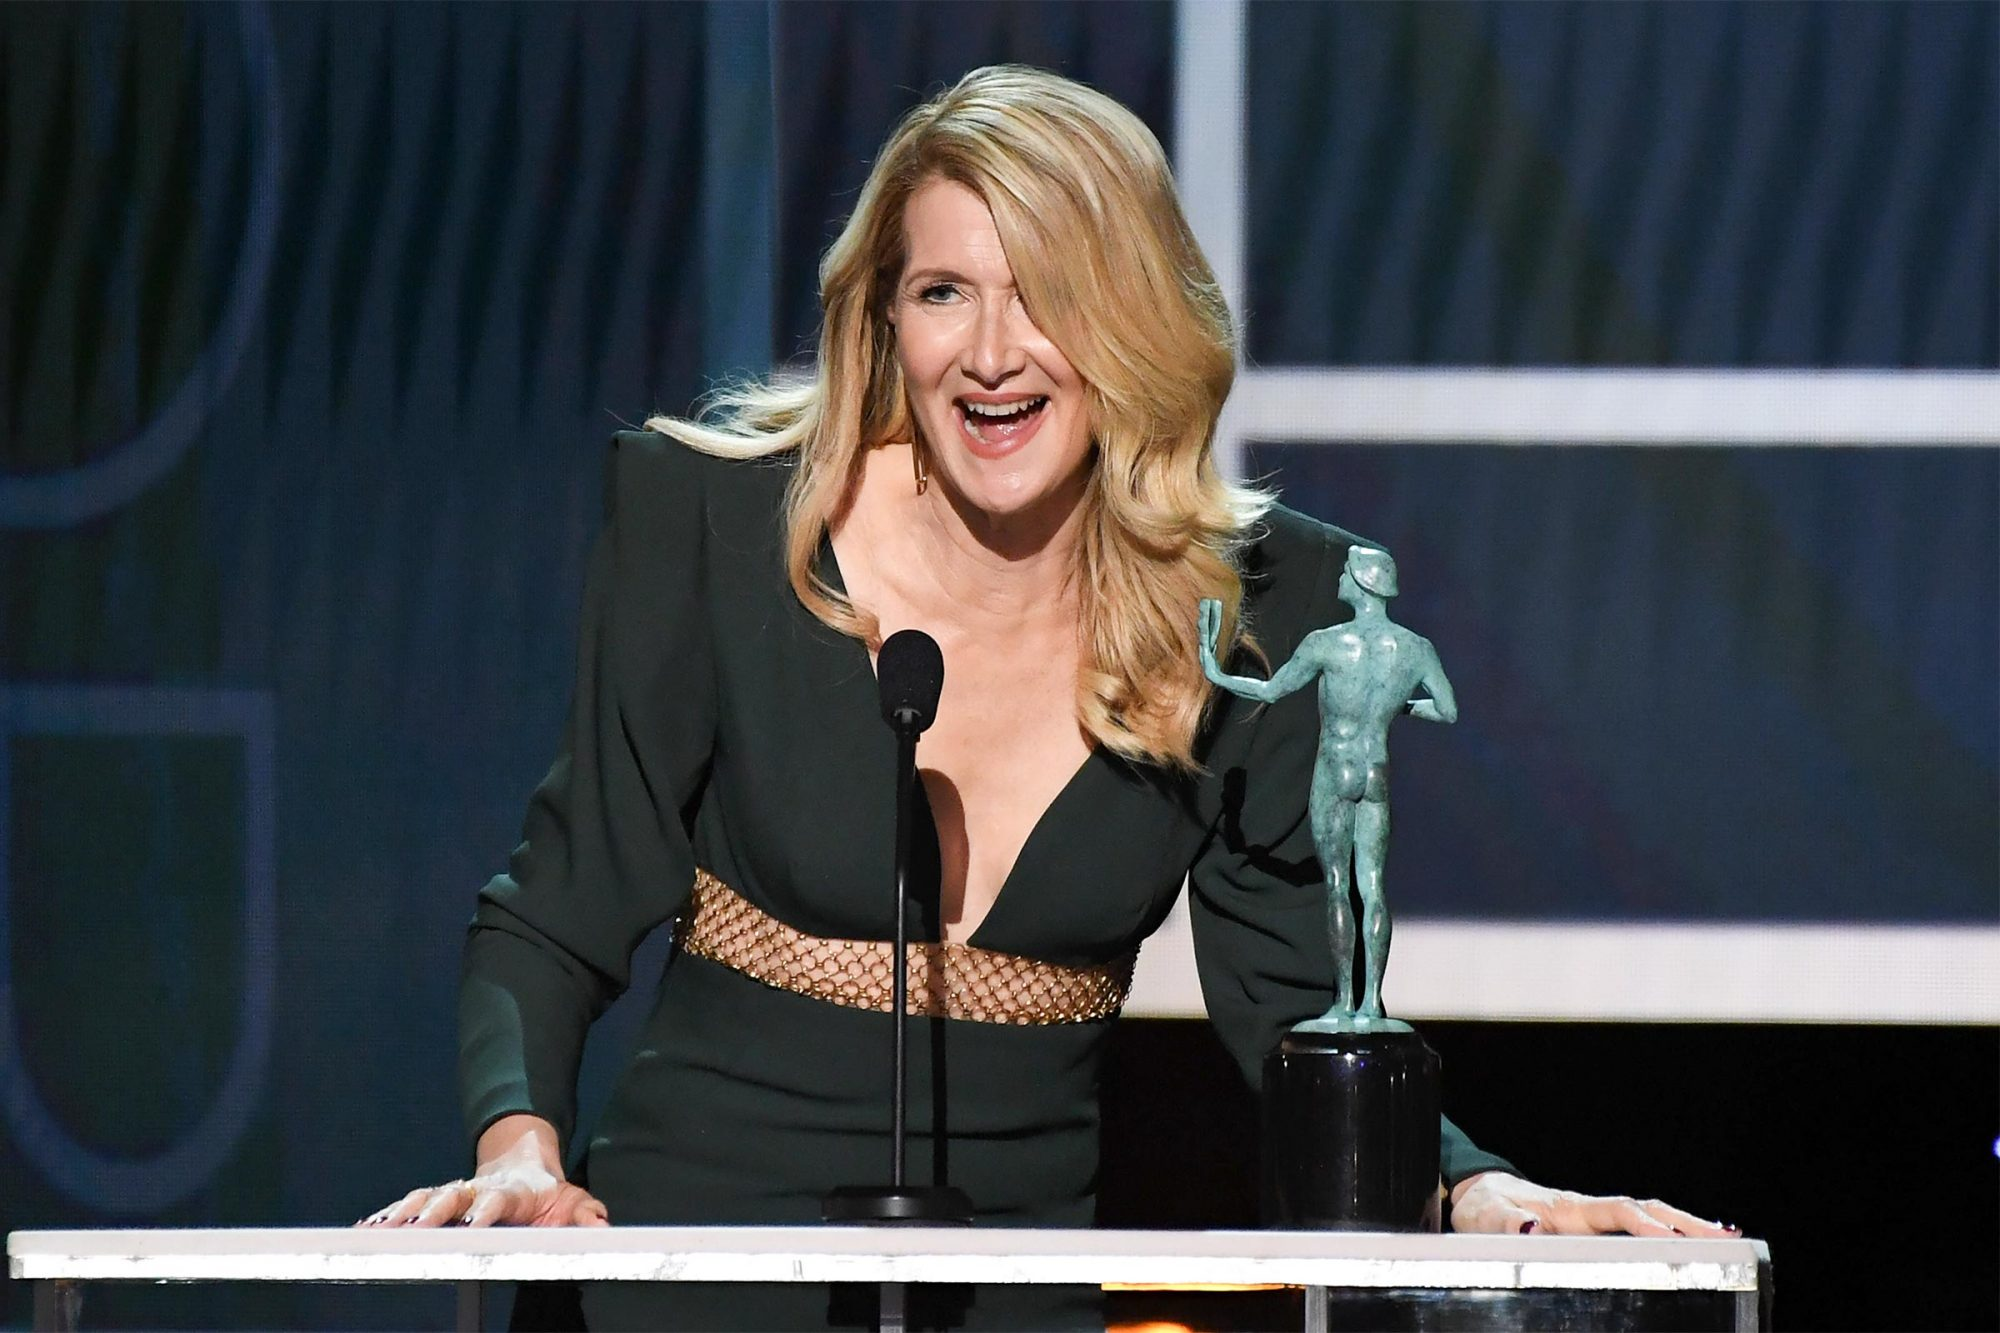 Laura Dern — Best Supporting Actress in a Motion Picture